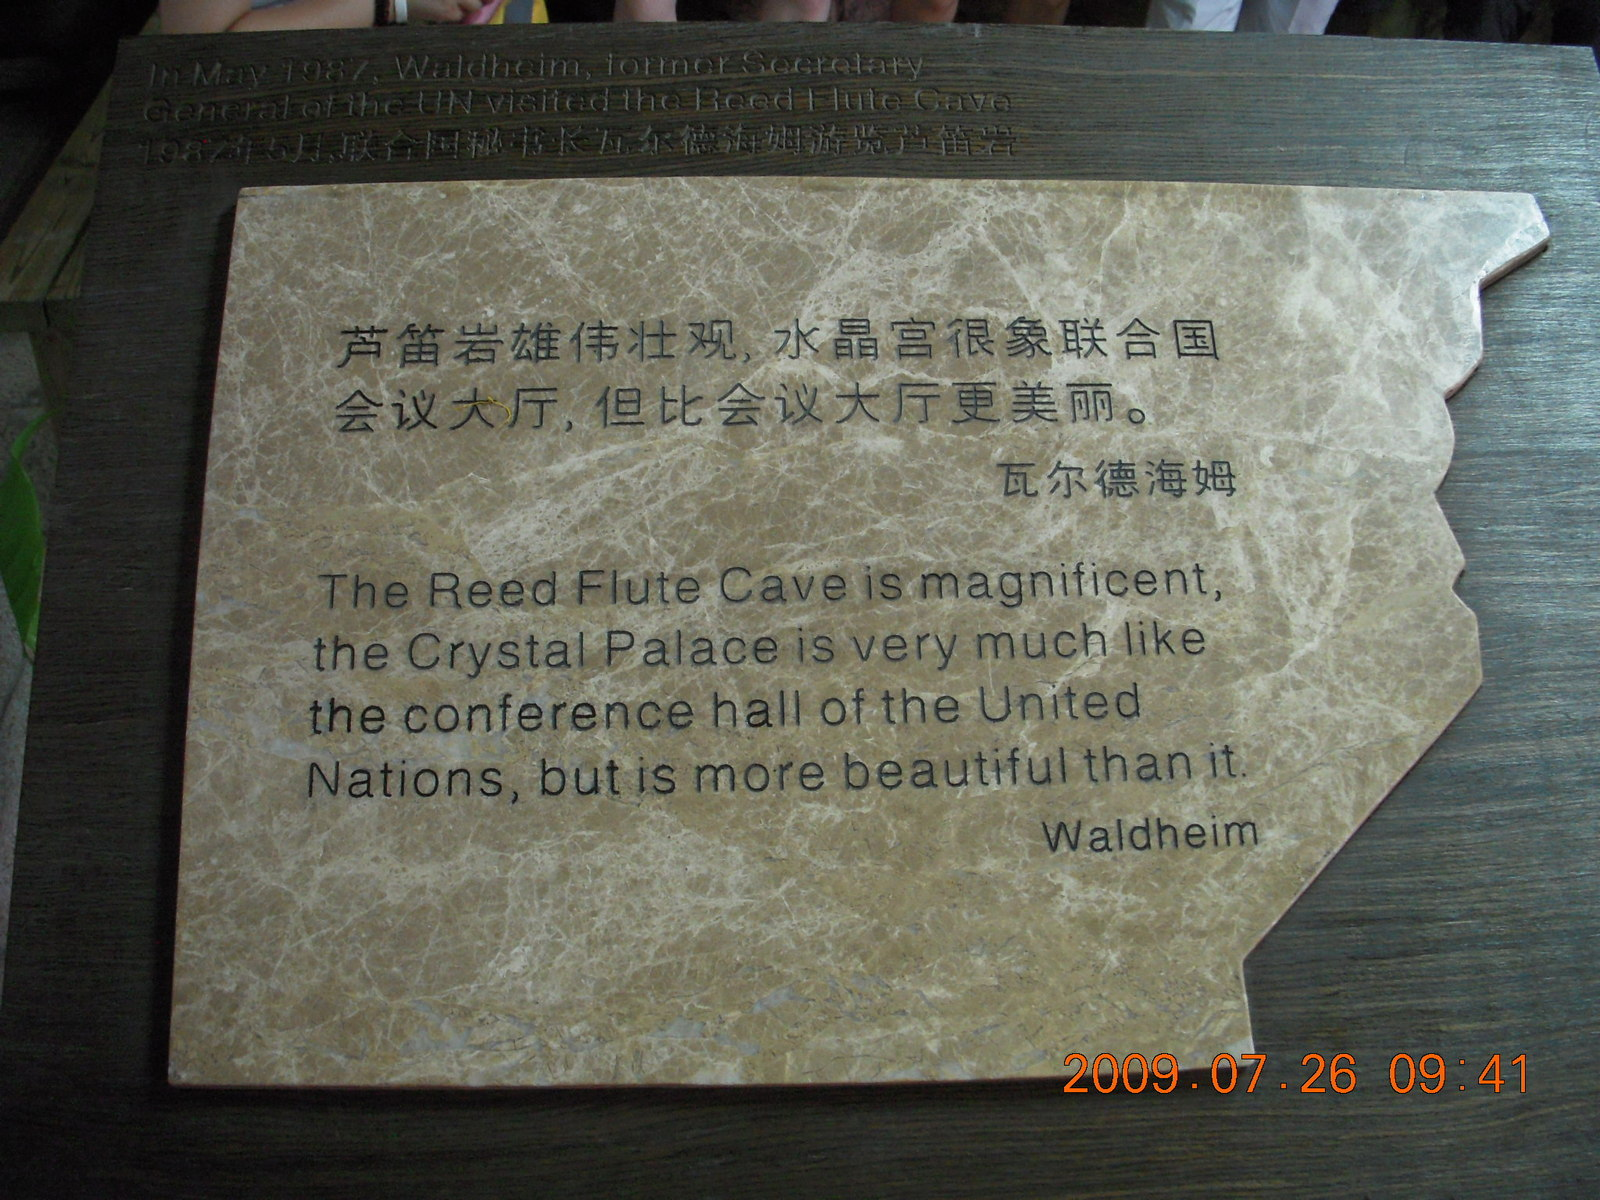 China eclipse - Guilin - Reed Flute Cave sign